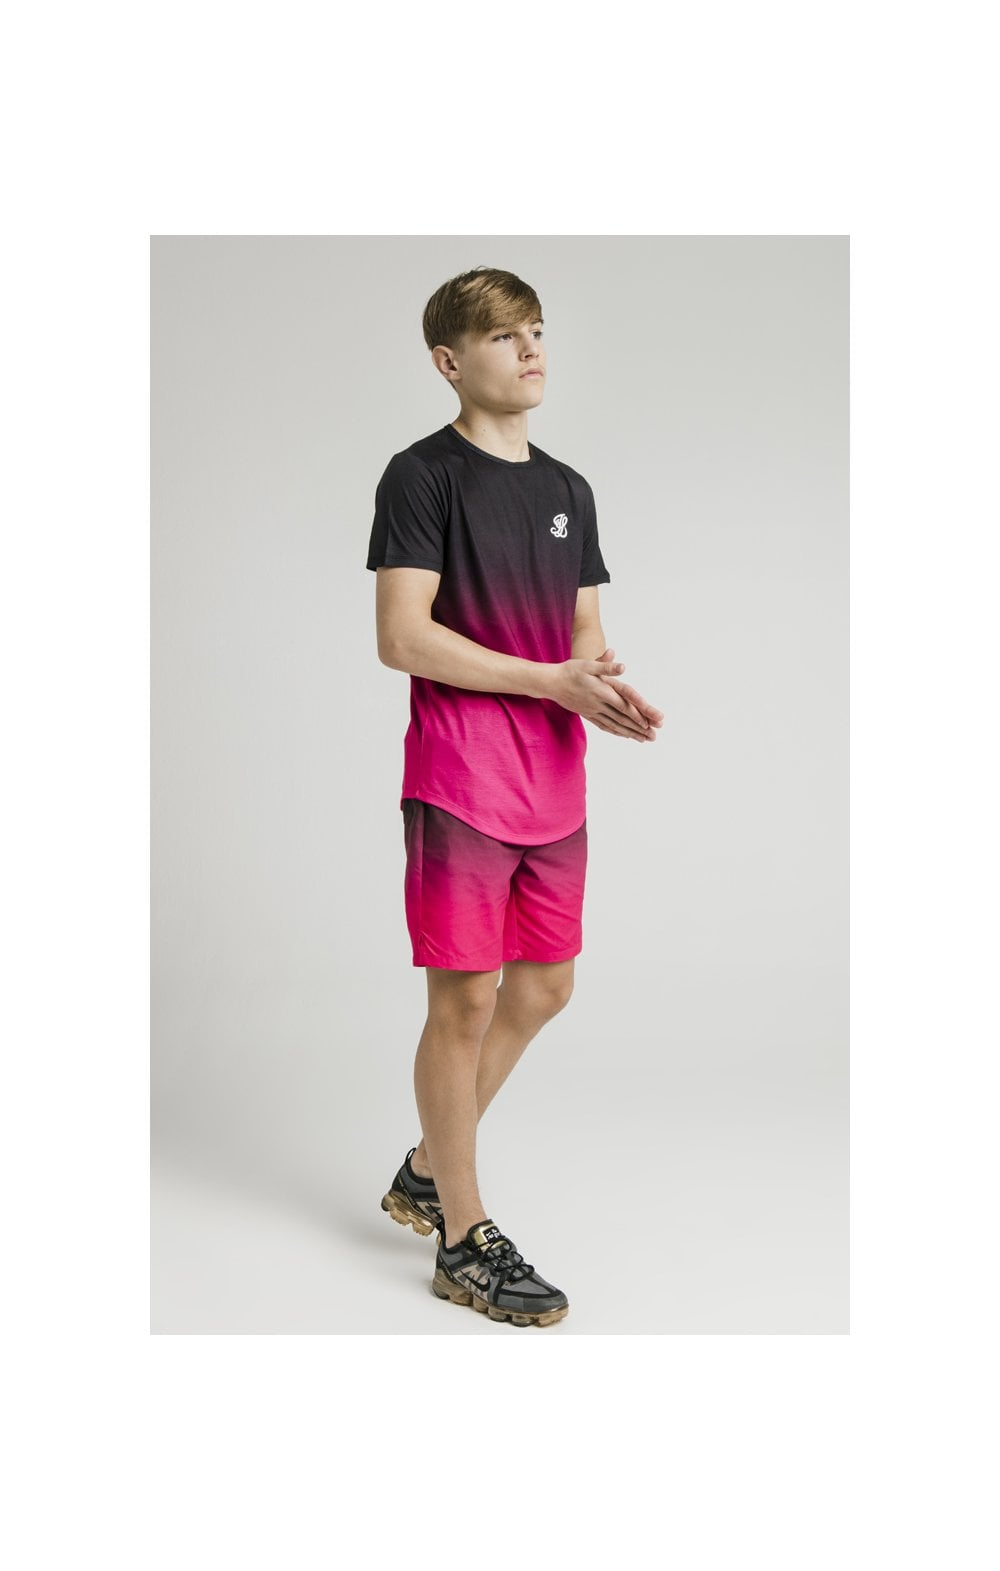 Illusive London Swim Shorts - Black & Pink (6)